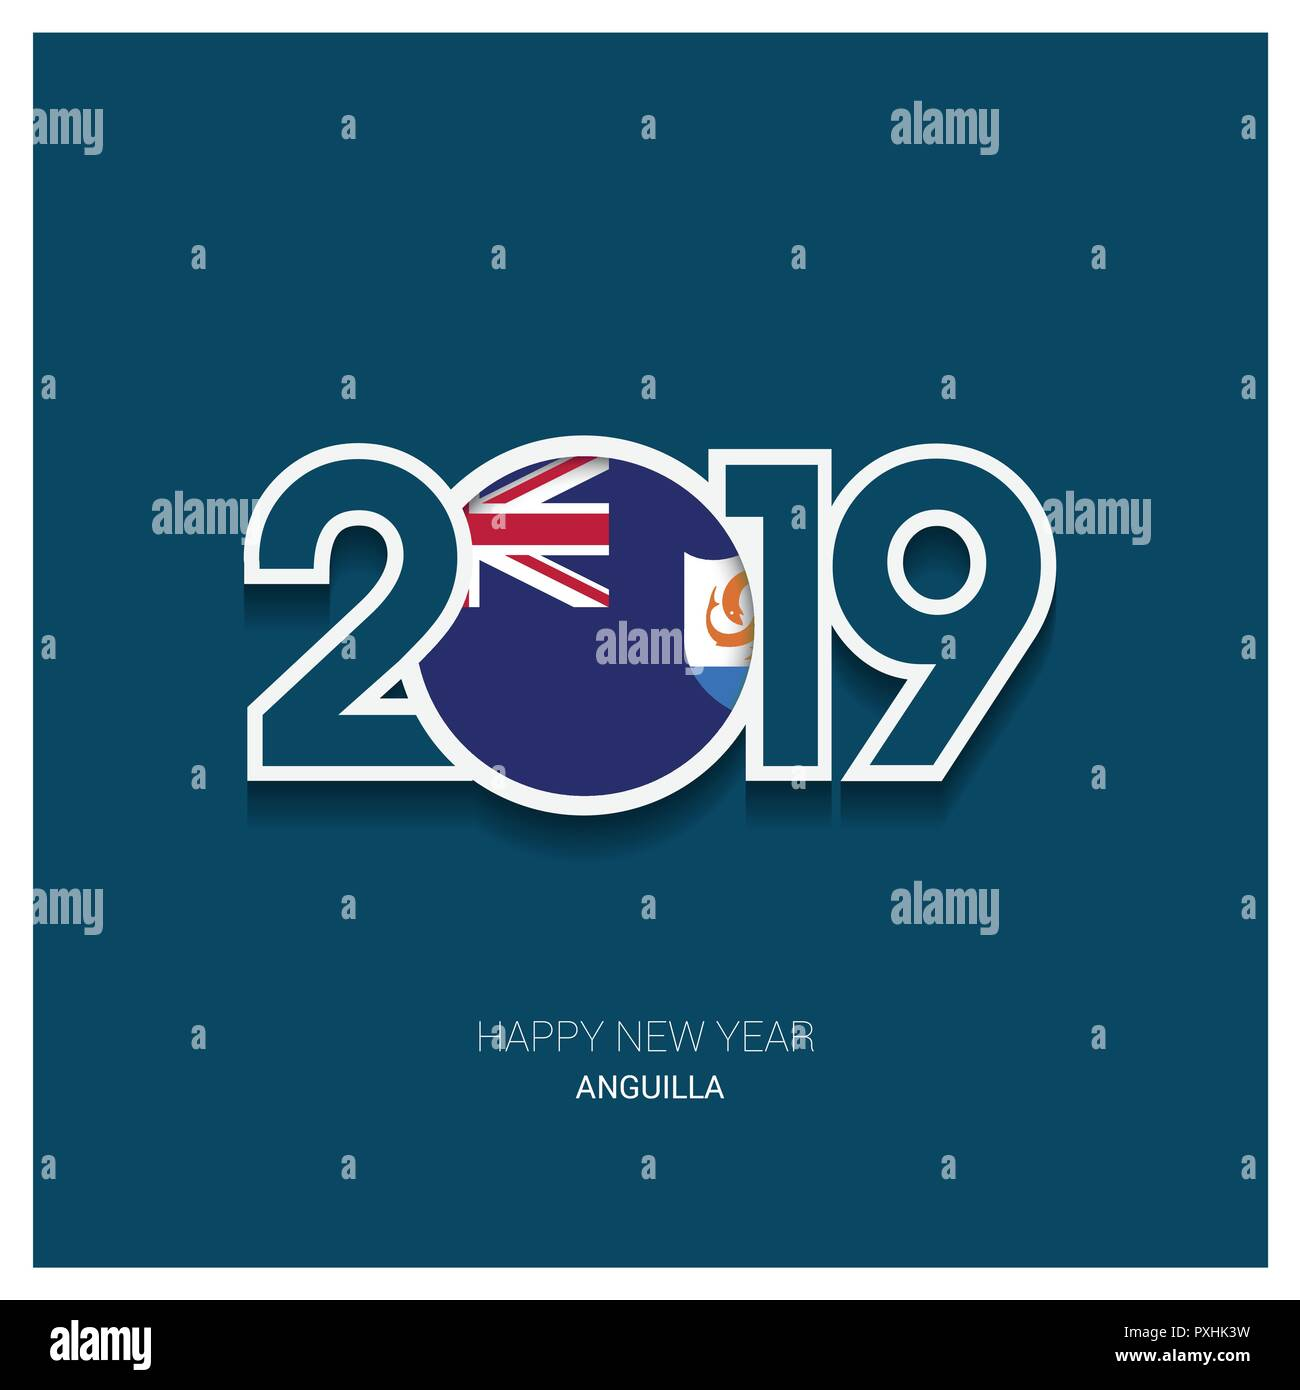 2019 Anguilla Typography, Happy New Year Background - Stock Vector